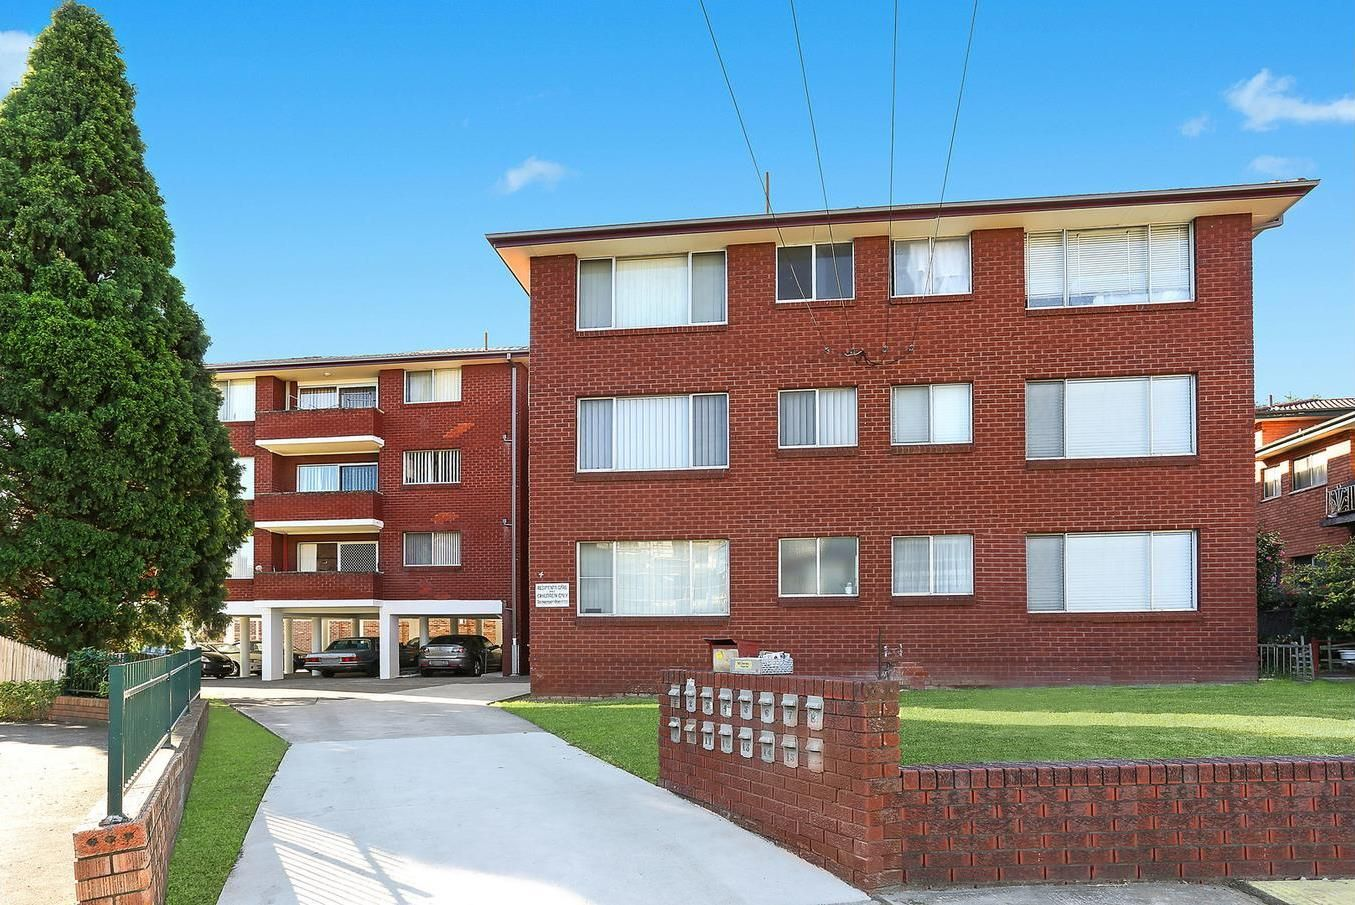 7/4 Mooney Street, Strathfield South NSW 2136